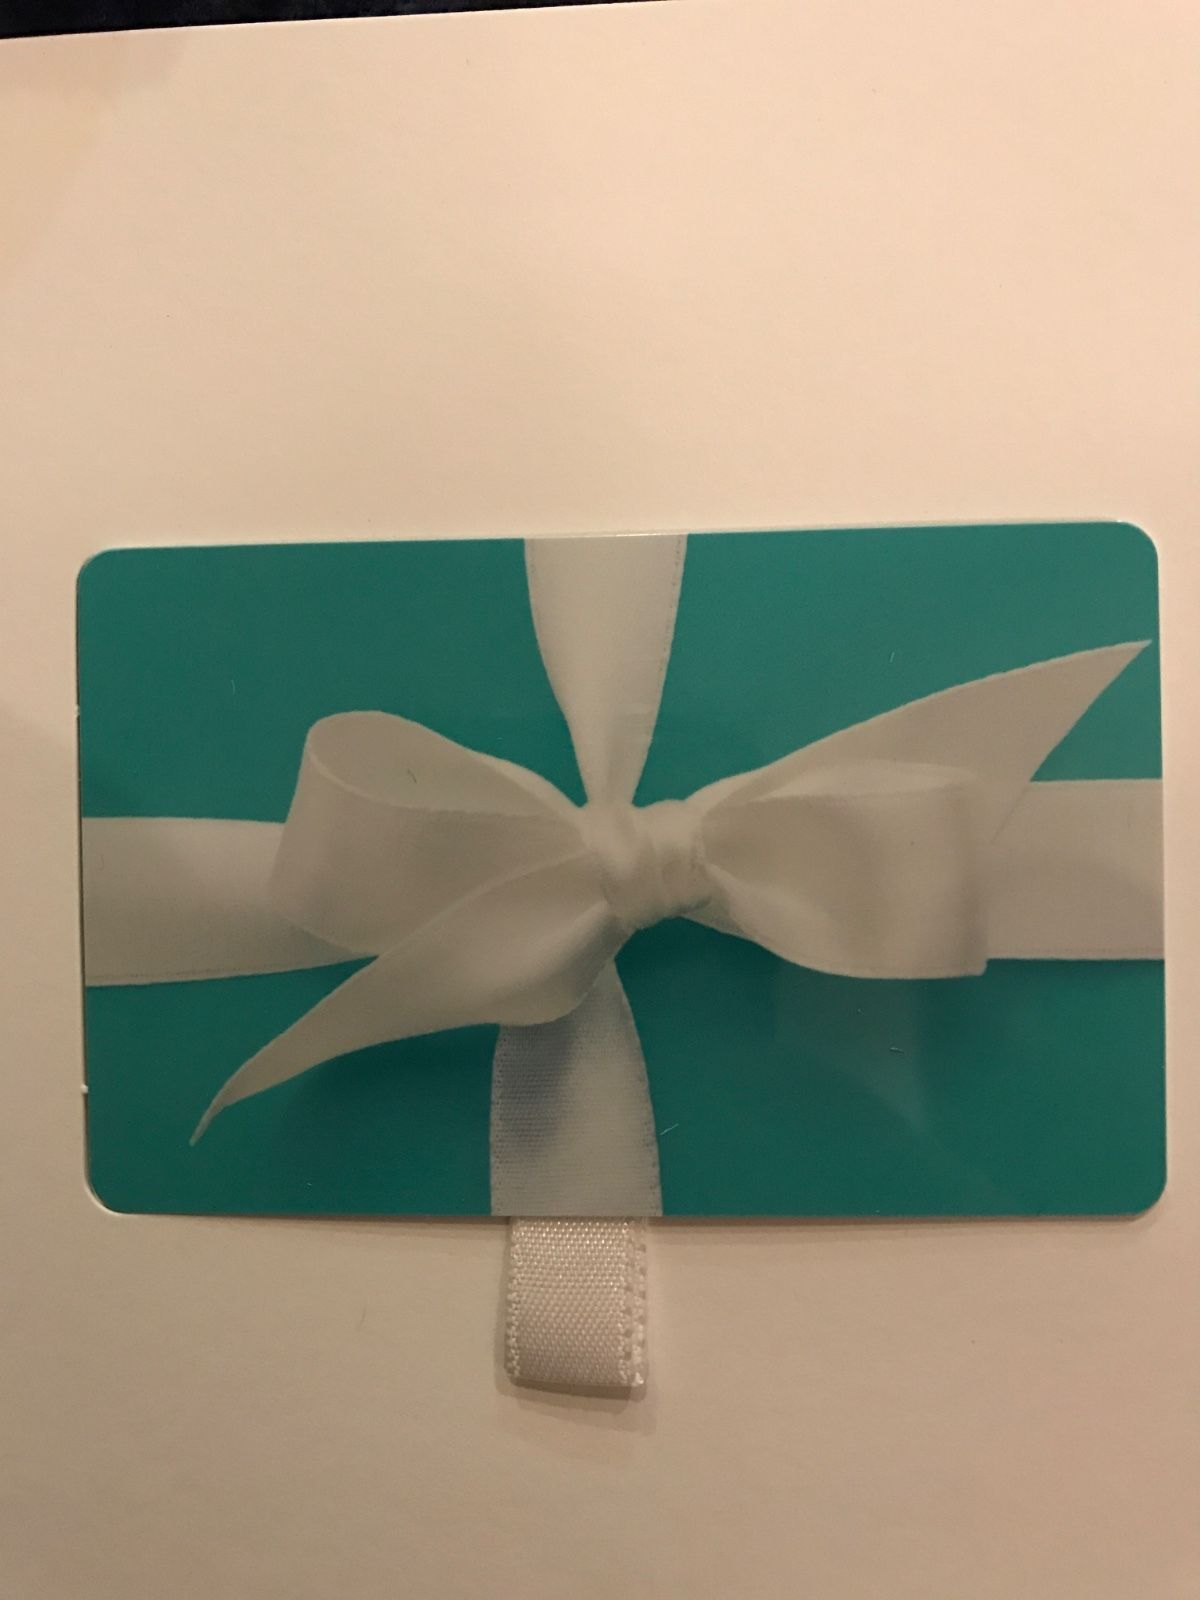 Coupons Giftcards 200 Tiffany Co Gift Card Coupons Giftcards Gift Card Gift Card Sale Tiffany Co